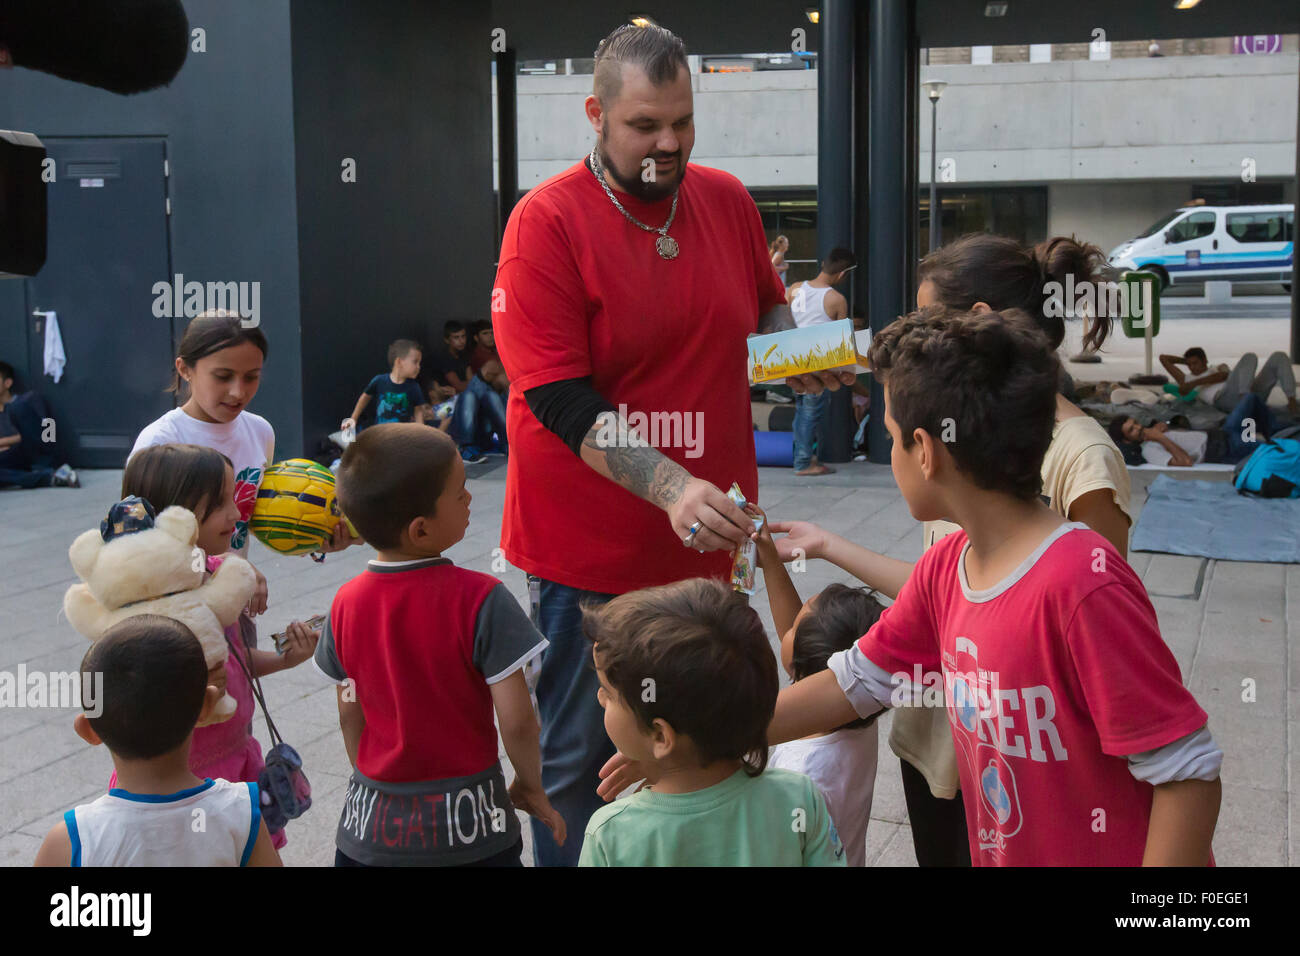 (150814) -- BUDAPEST, Aug. 14, 2015 (Xinhua) -- A migration aid volunteer distributes food to illegal migrants in - Stock Image